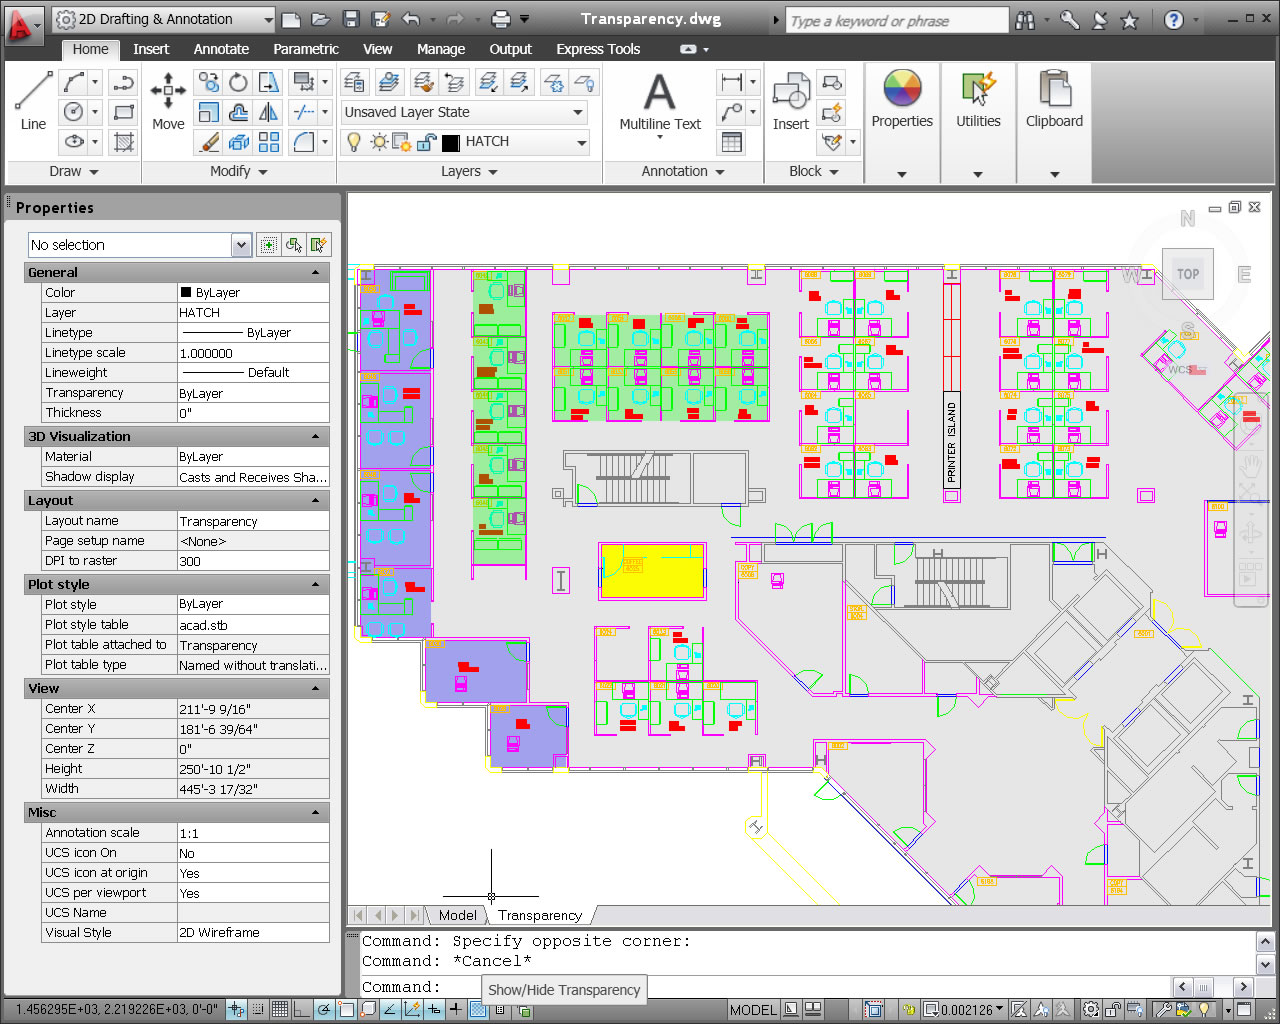 autocad2011_whatsnew_transparency_large_1280x1024.jpg